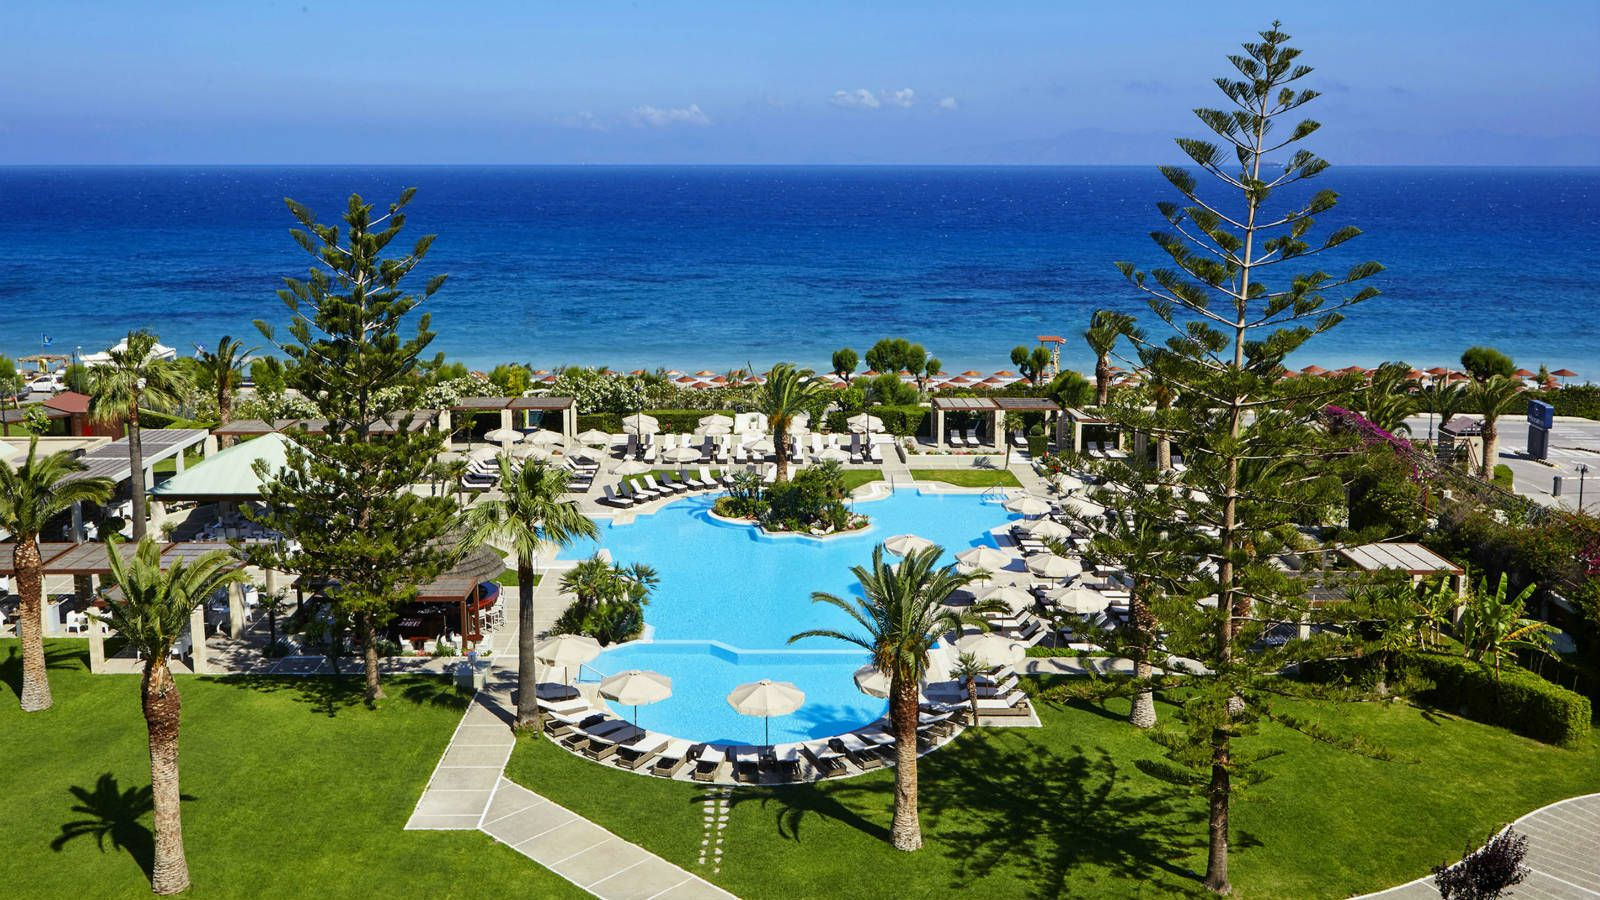 Amidst landscaped gardens the swimming pools are a refreshing oasis - Sheraton Rhodes Resort